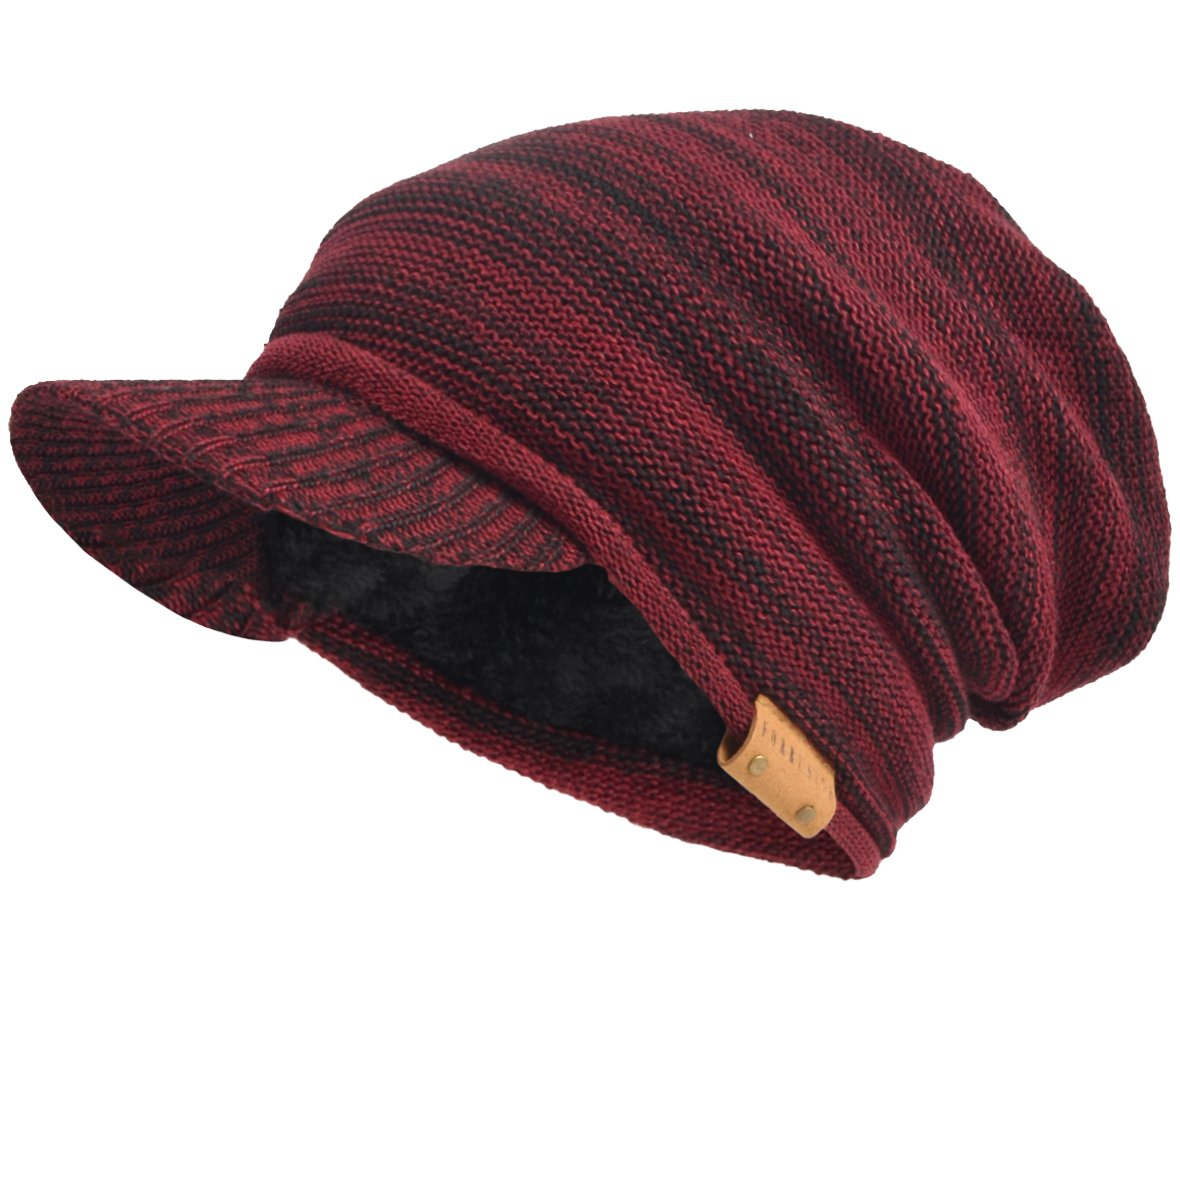 VECRY Men's Oversize Slouch Beanie Slouchy Skullcap Large Baggy Hat F-N010Black-1